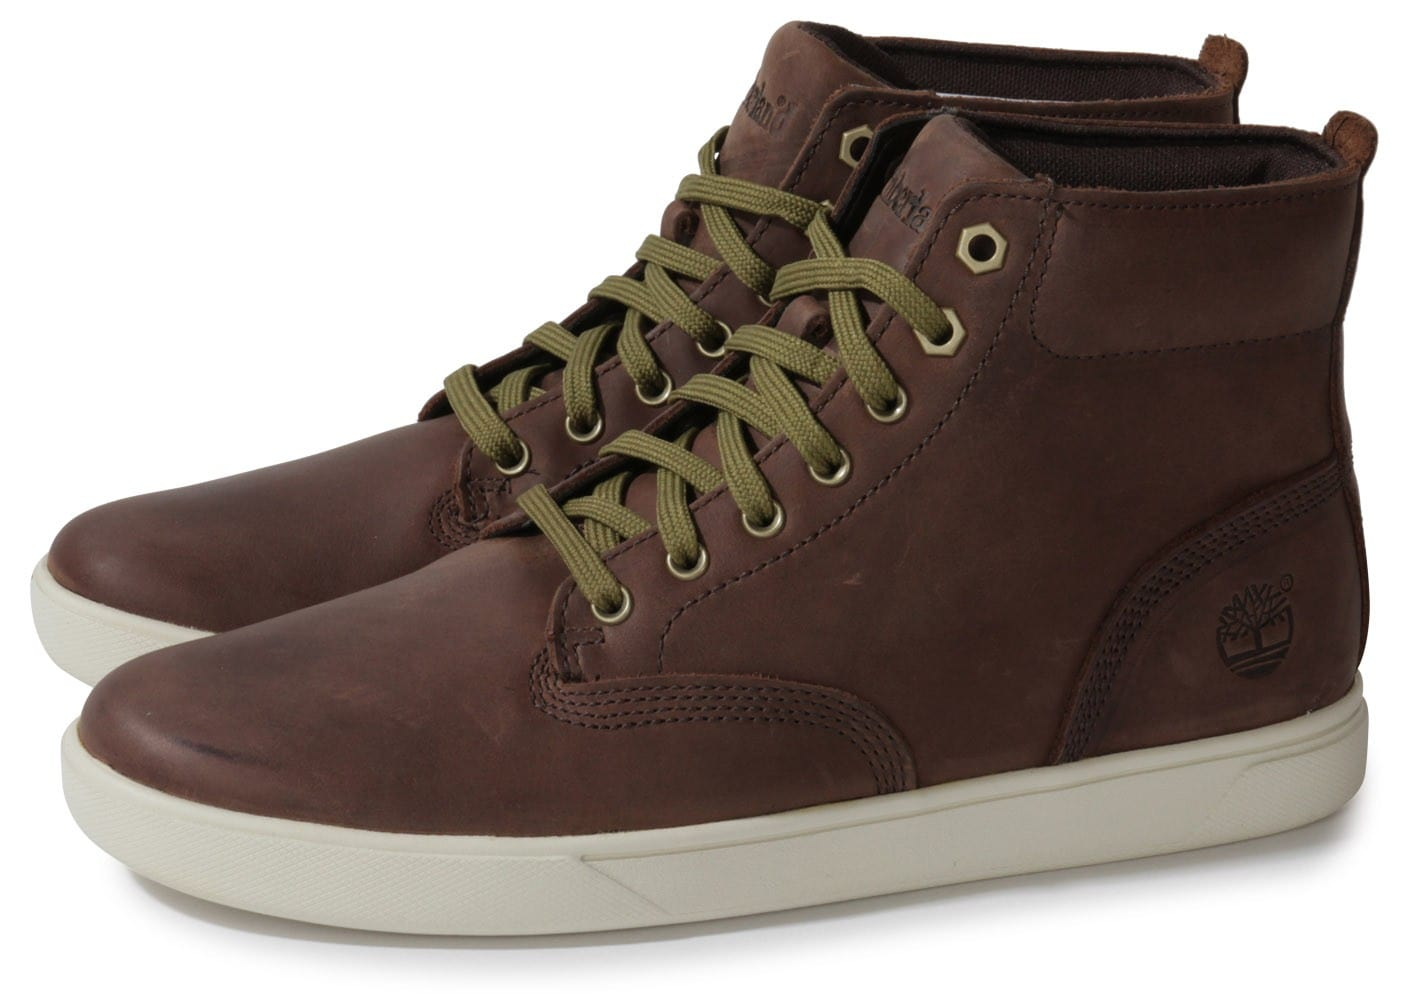 Cliquez pour zoomer Chaussures Timberland EARTHKEEPERS 3.0 CUPSOLE BOOT MARRON vue extérieure